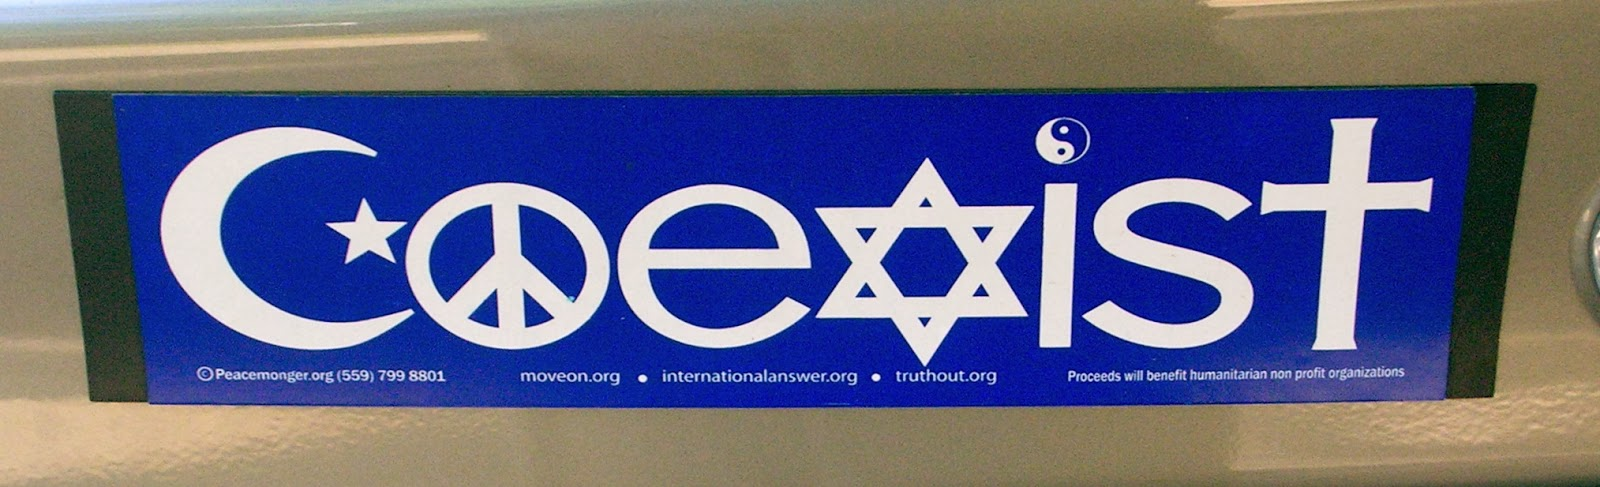 Coexist-bumpersticker